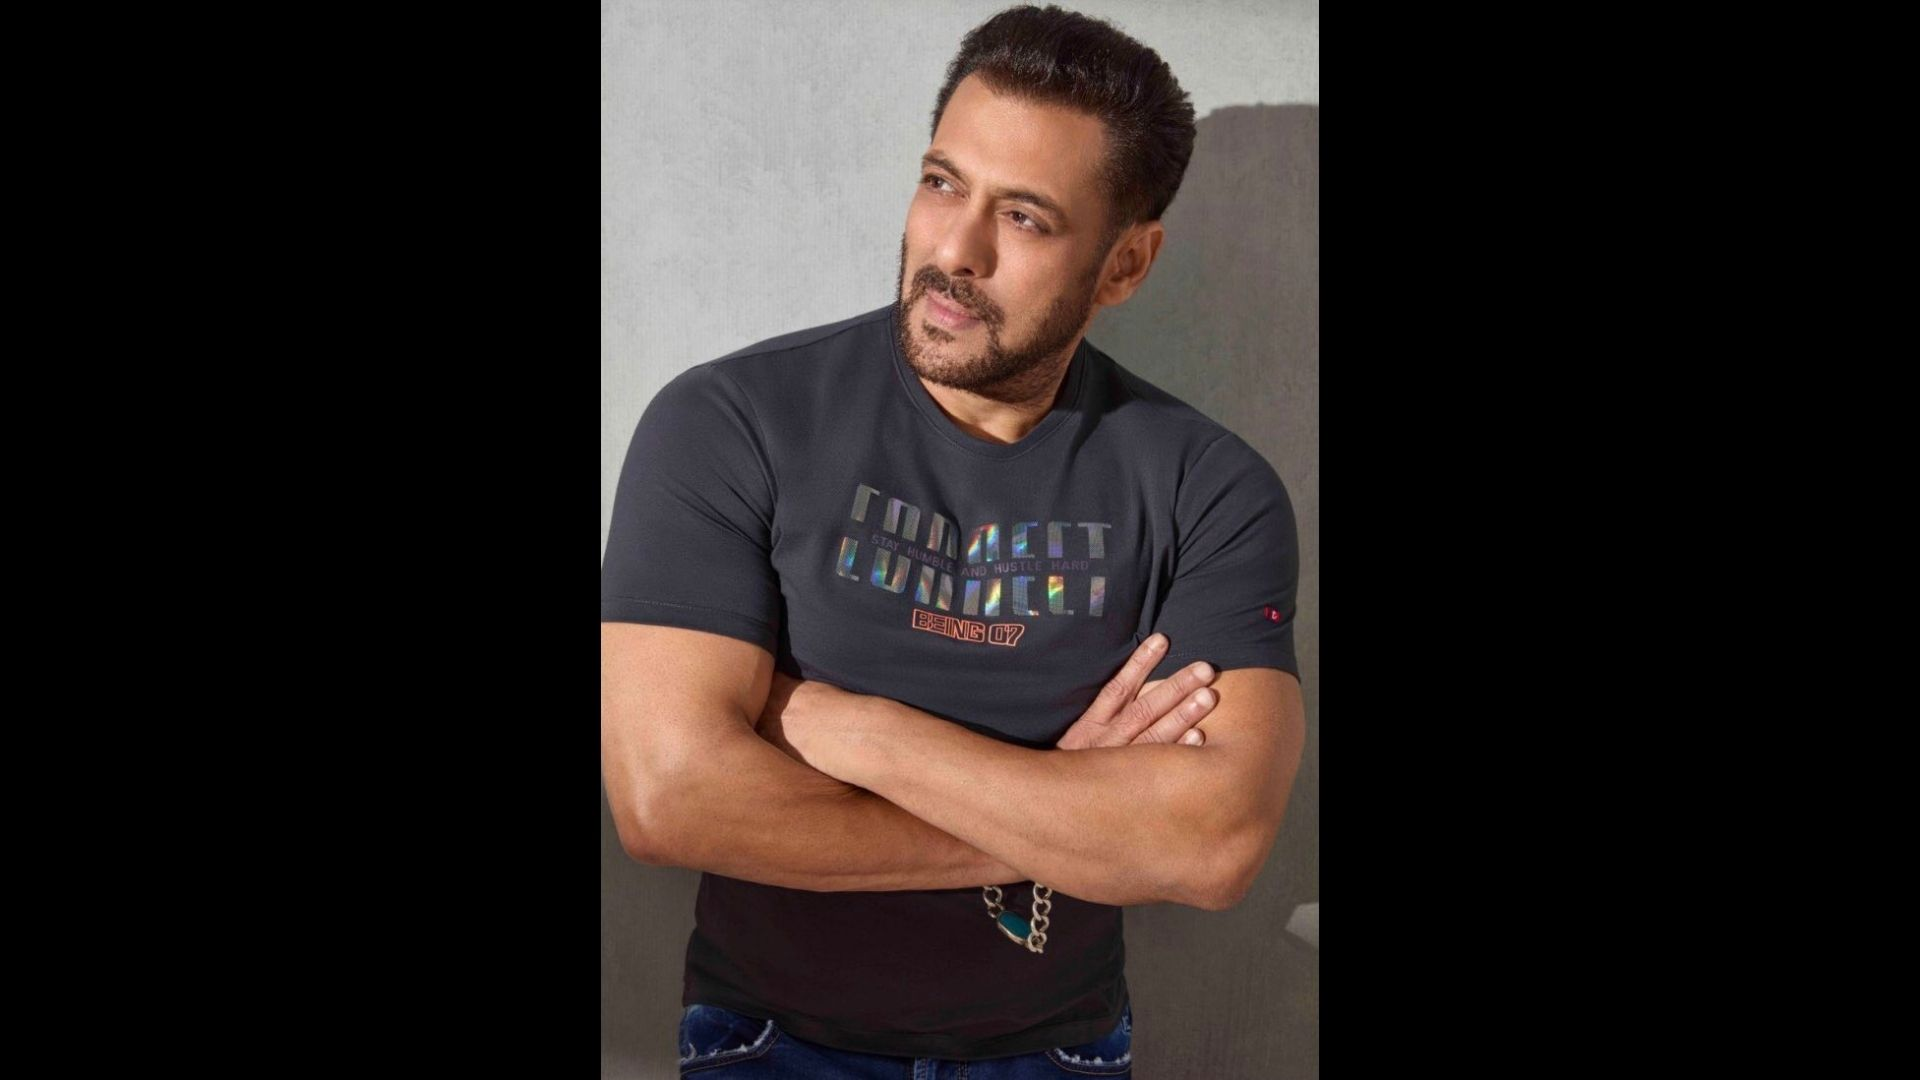 Salman Khan Has Renewed His Lease On A Bandra Duplex For Rs 8.25 Lakh Per Month